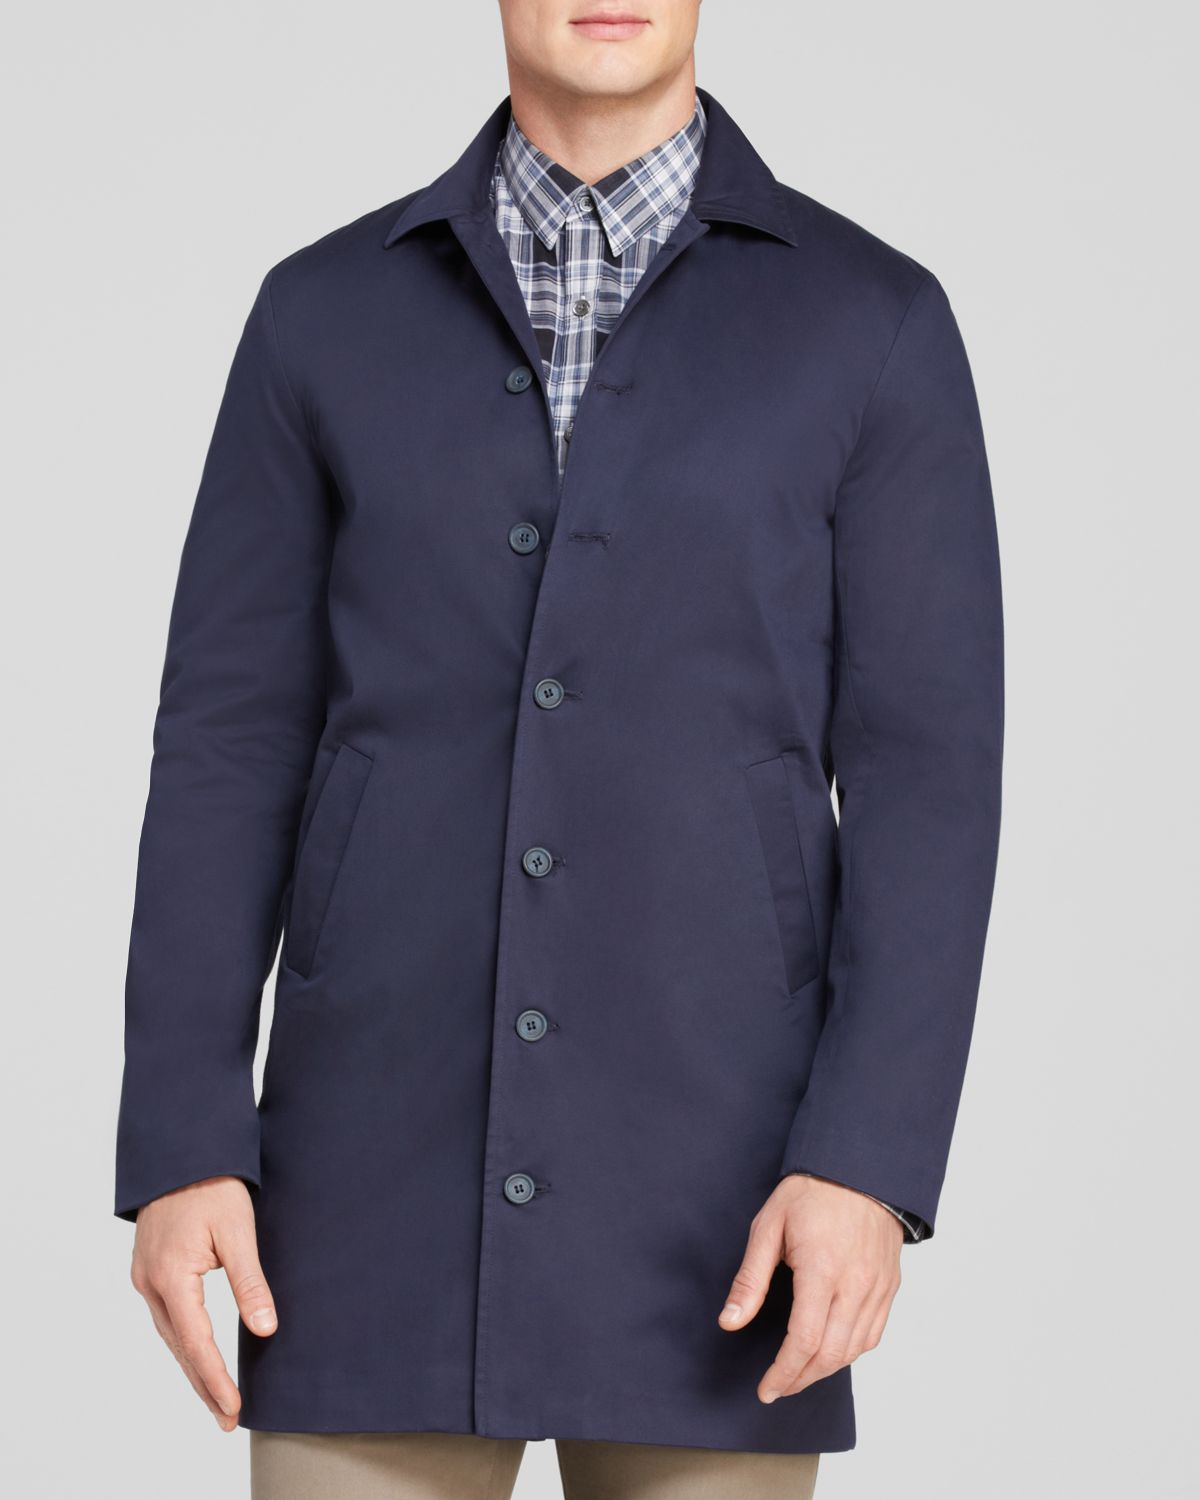 sale online highly praised low priced Lucio Castro Blue Mac Jacket for men